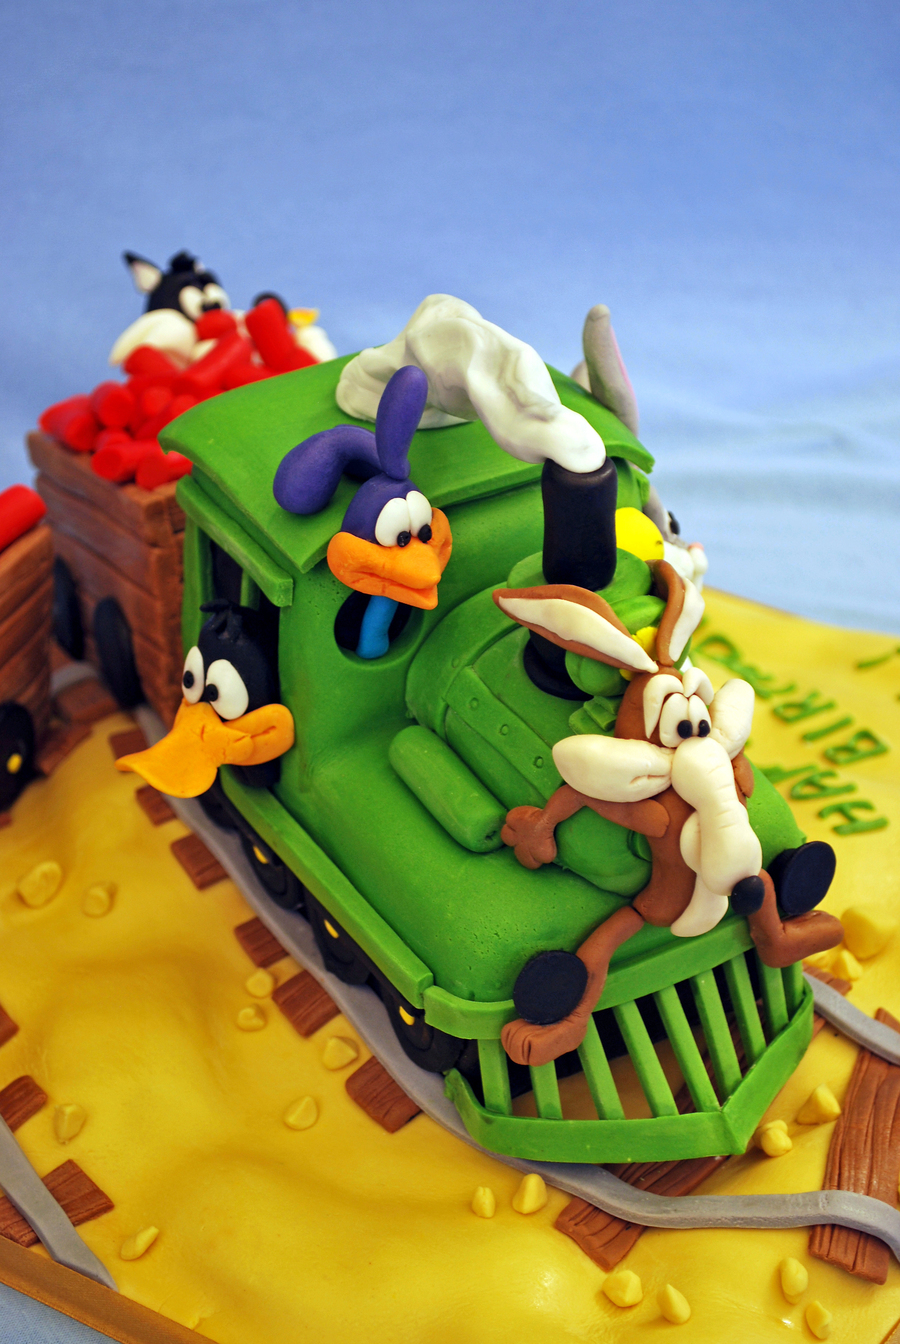 Looney Tunes Characters On A Train Journey From A Book